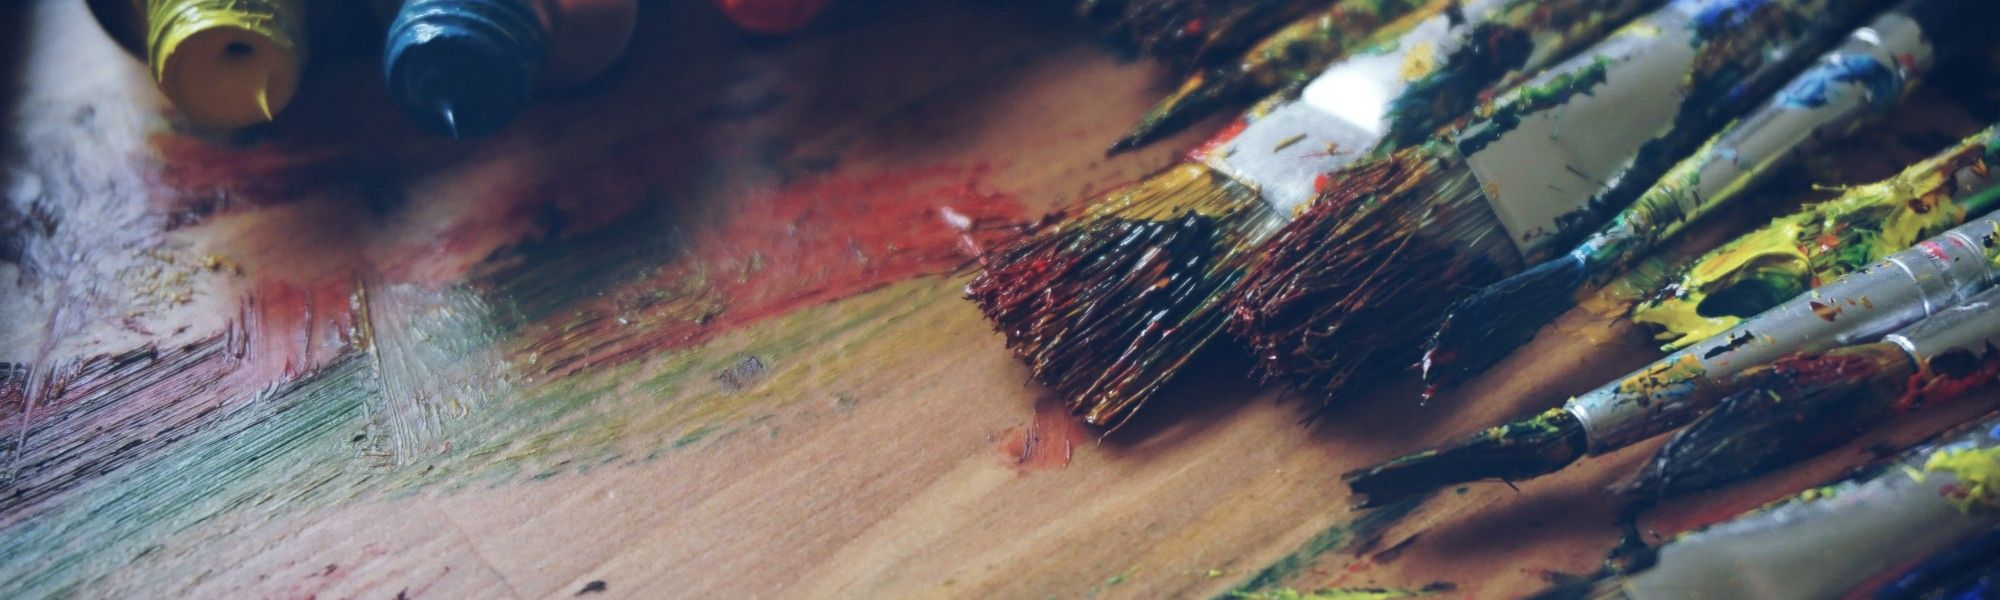 Dirty paint brushes with various colors